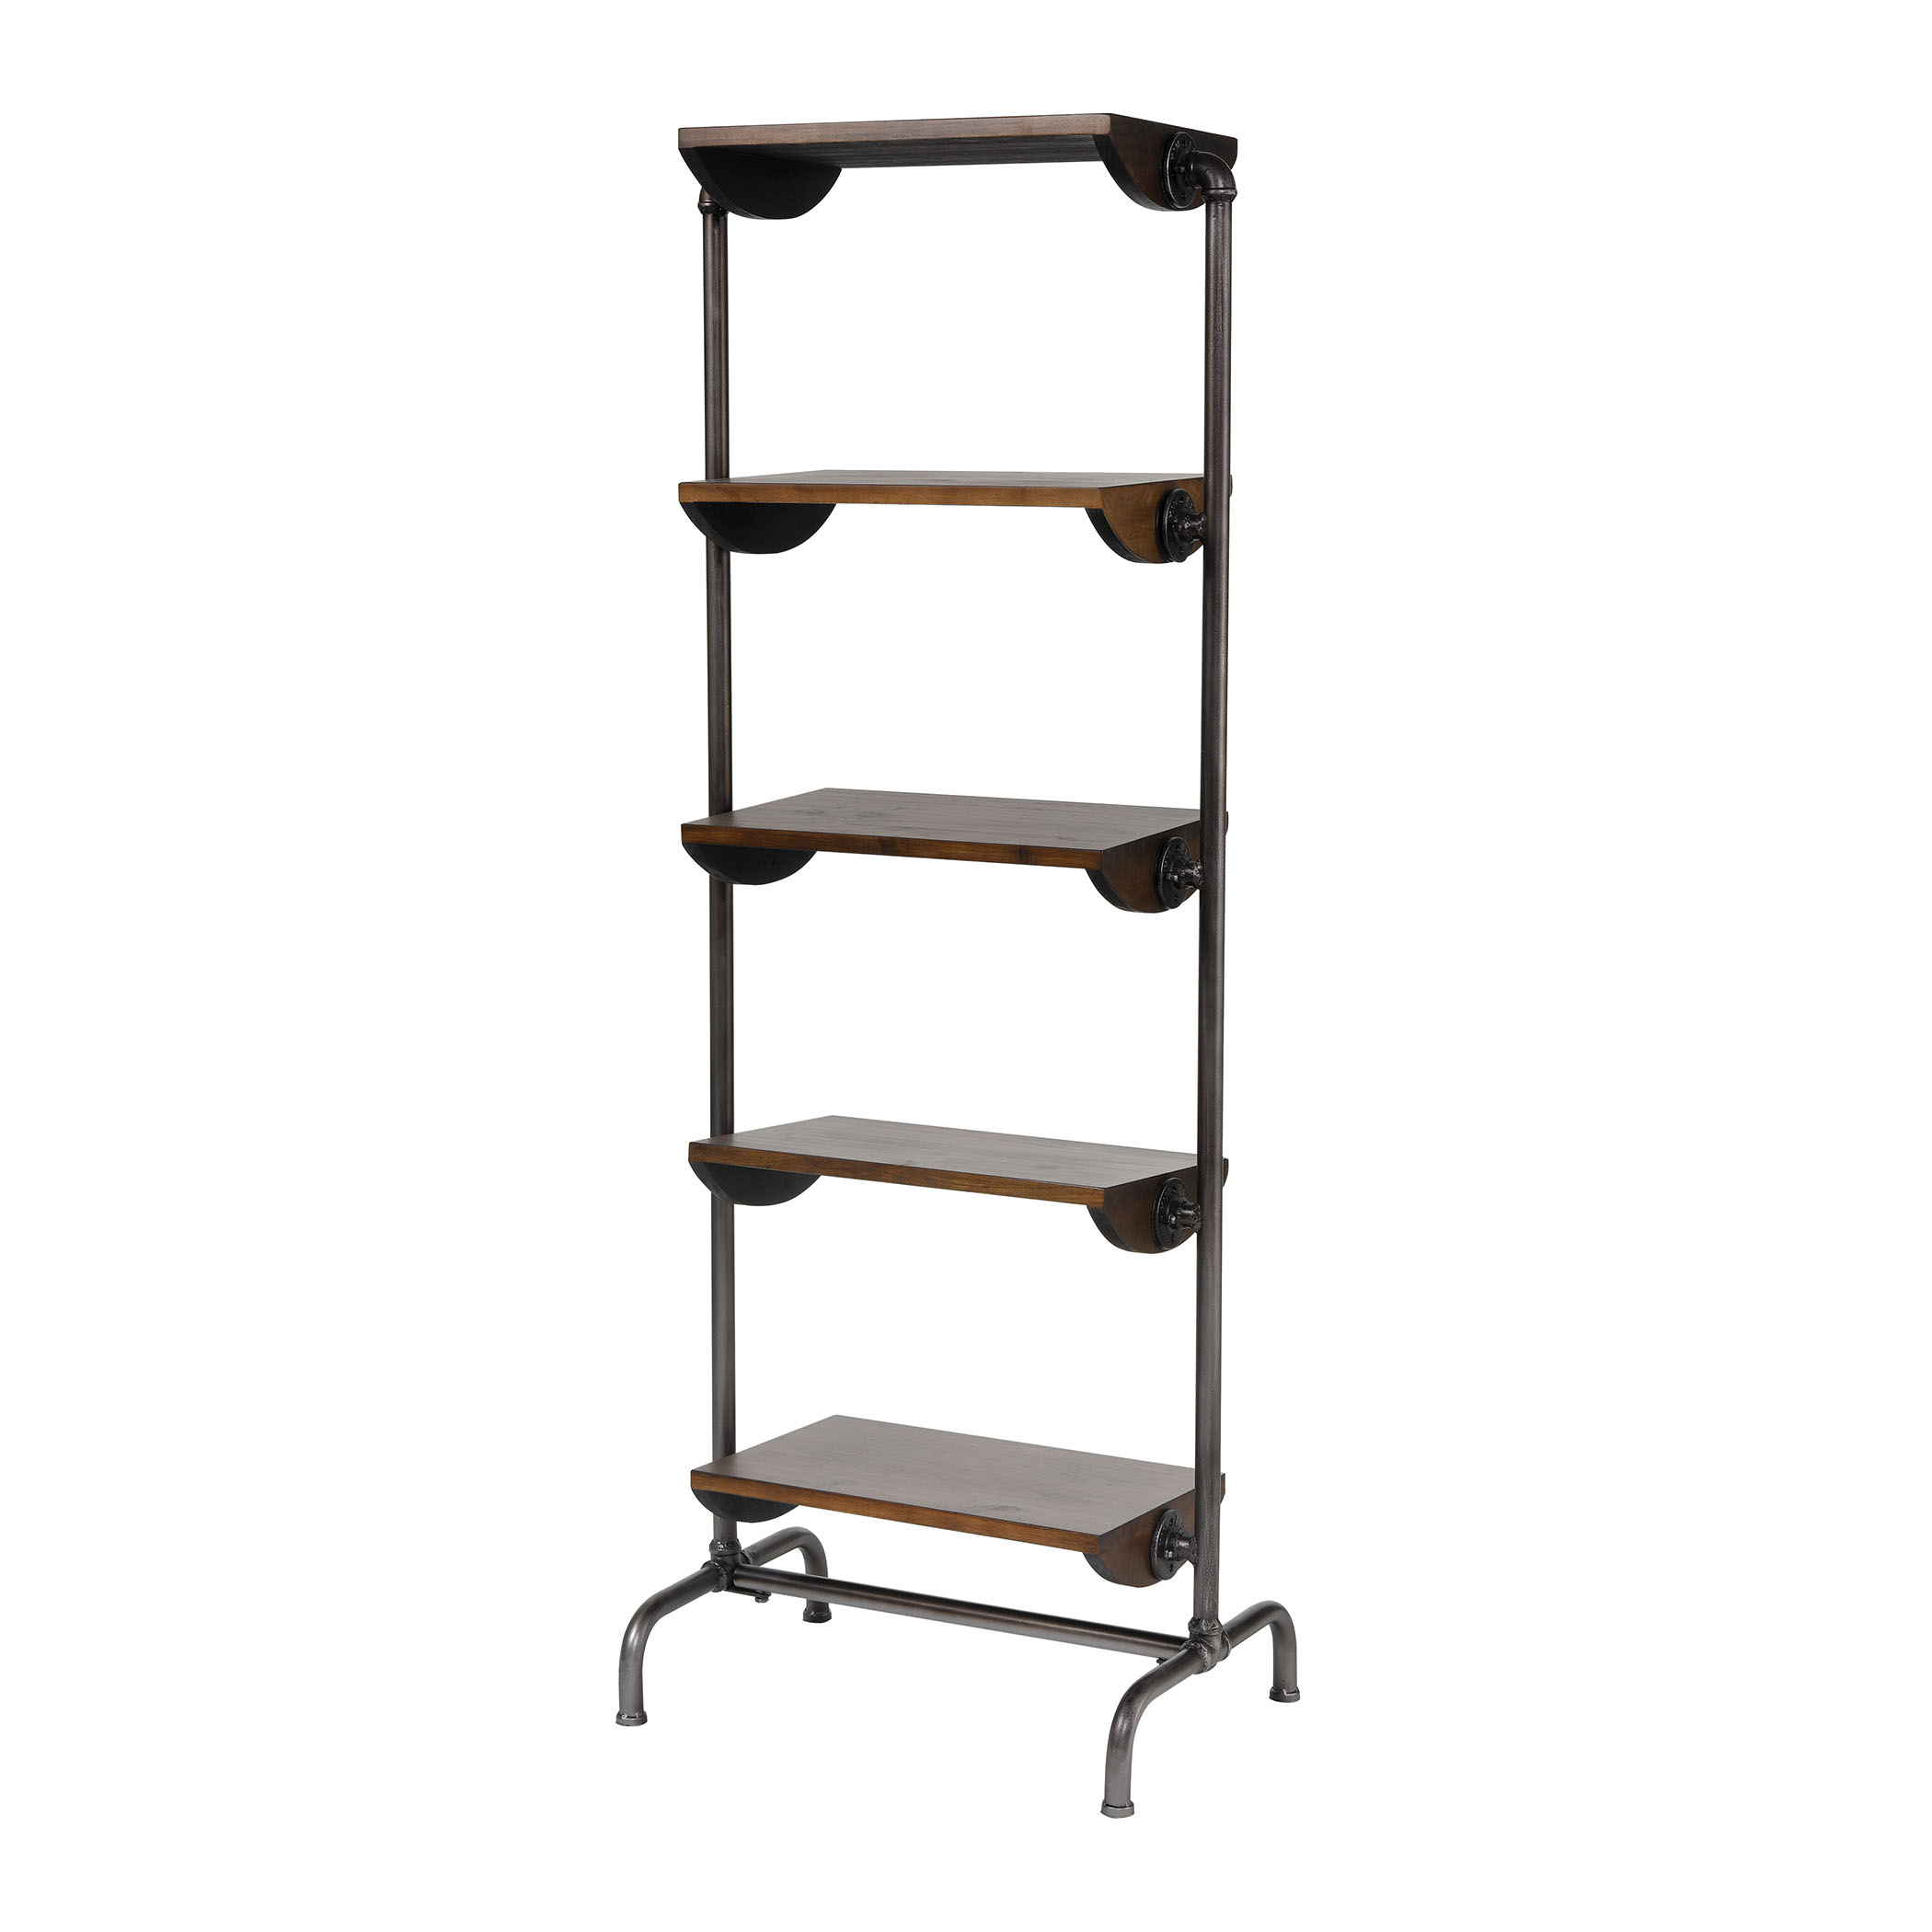 Industry City Bookcase in Black and Natural Wood Tone | Elk Home